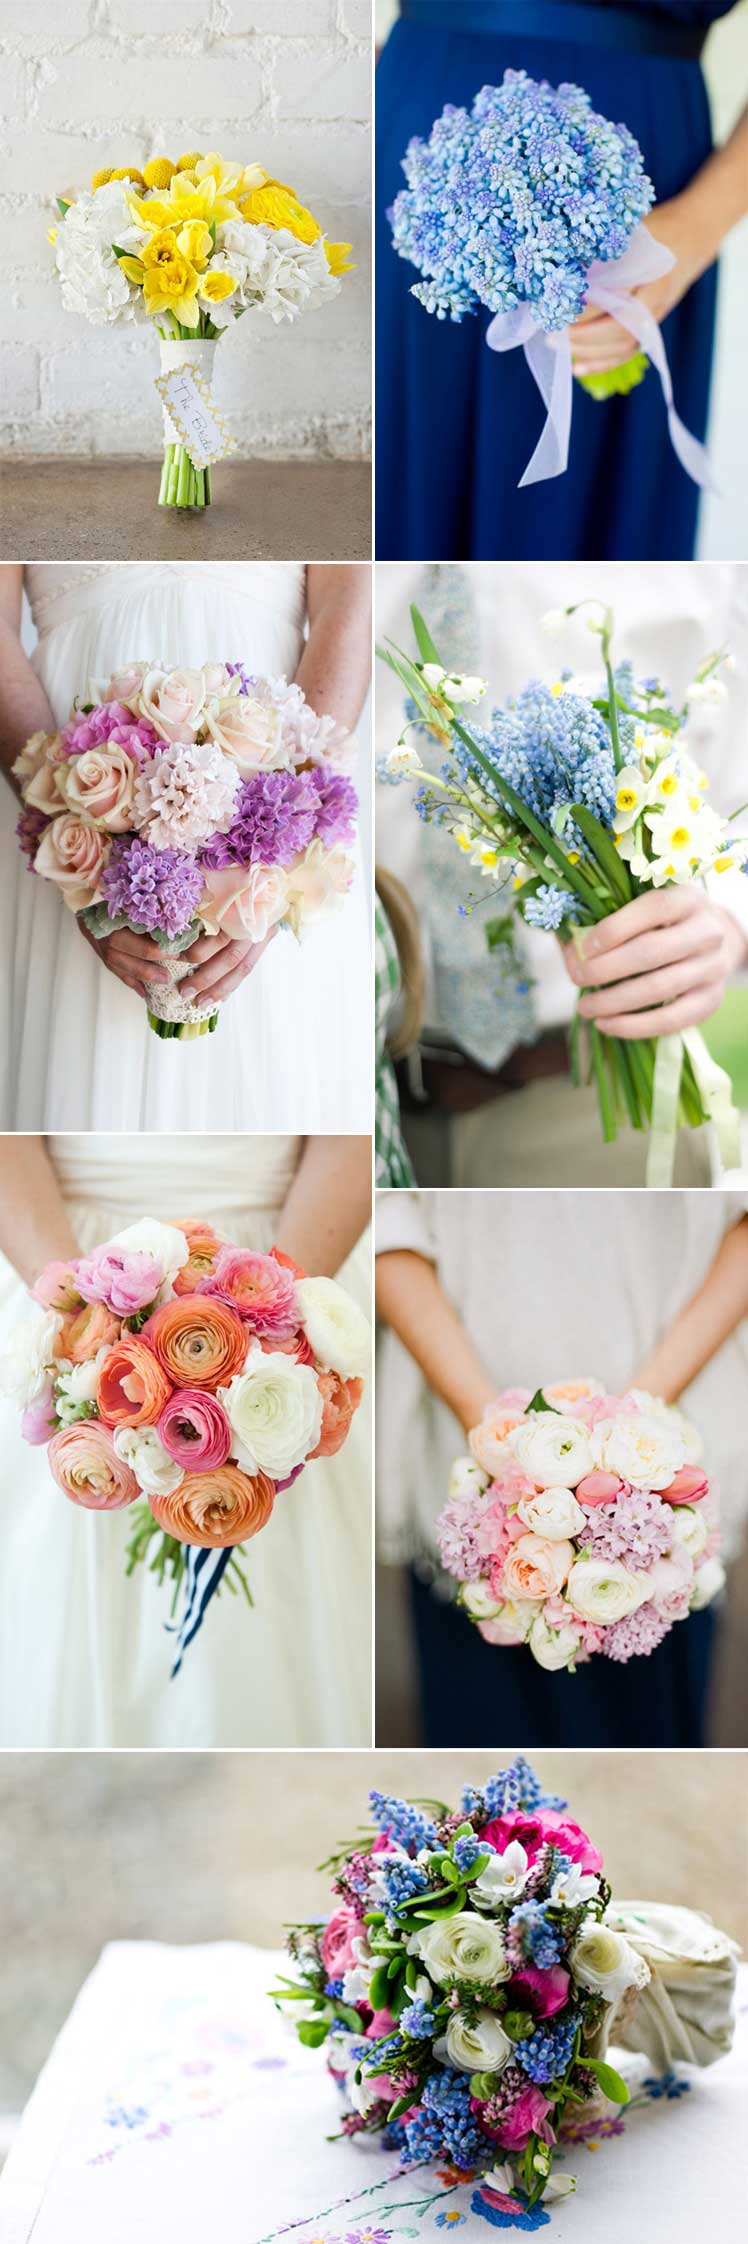 beautiful spring wedding bouquets for brides and bridesmaids